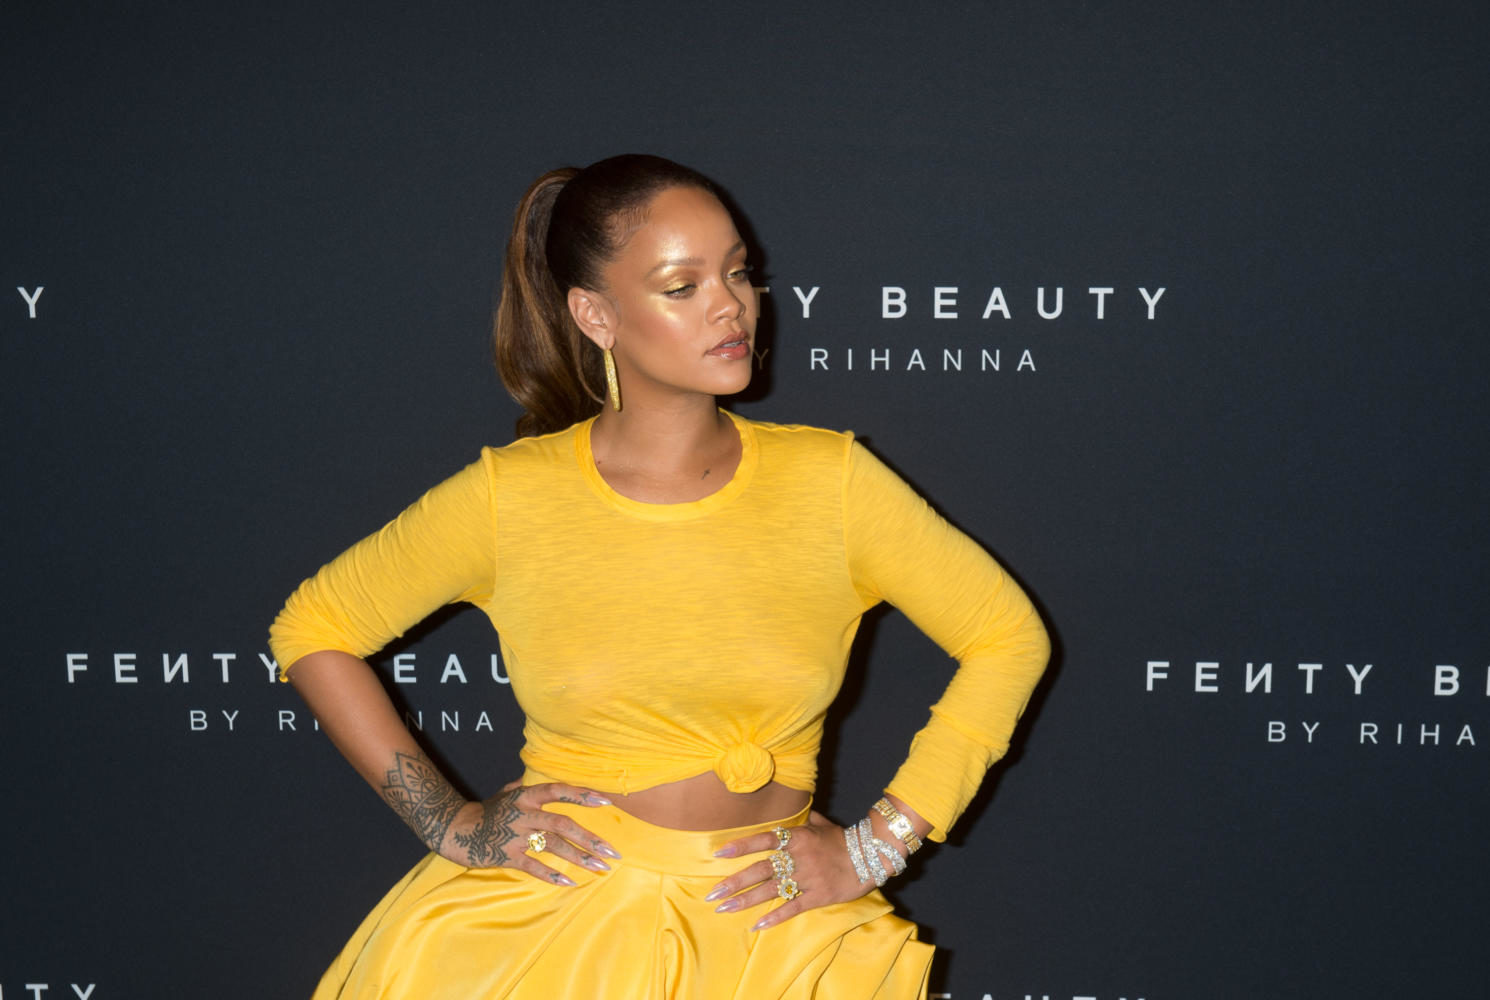 Rihanna arrives to celebrate the launch of her beauty brand, Fenty Beauty by Rihanna, on September 7, 2017 in New York.  / AFP PHOTO / Bryan R. Smith        (Photo credit should read BRYAN R. SMITH/AFP/Getty Images)